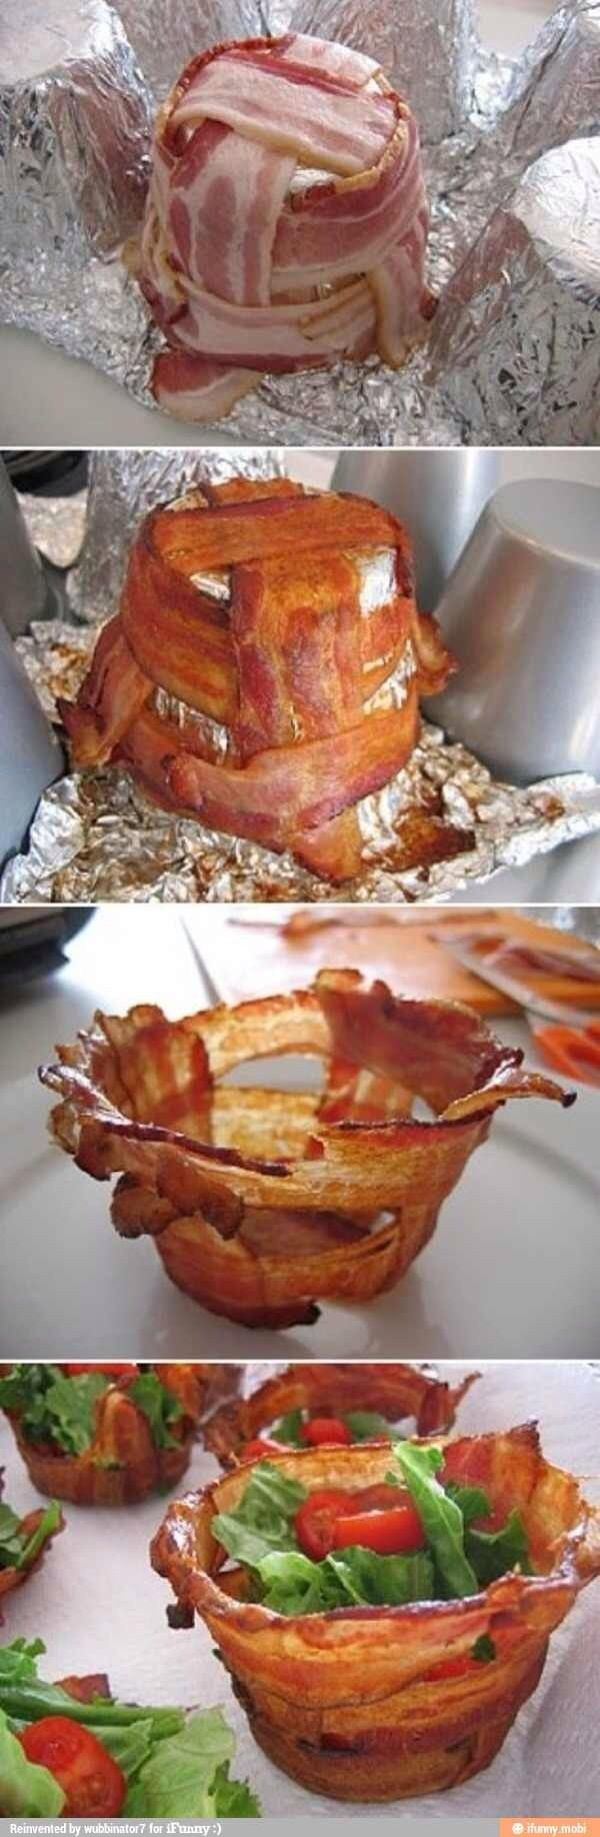 How to Make Bacon Bowls for Salad (Found Online)